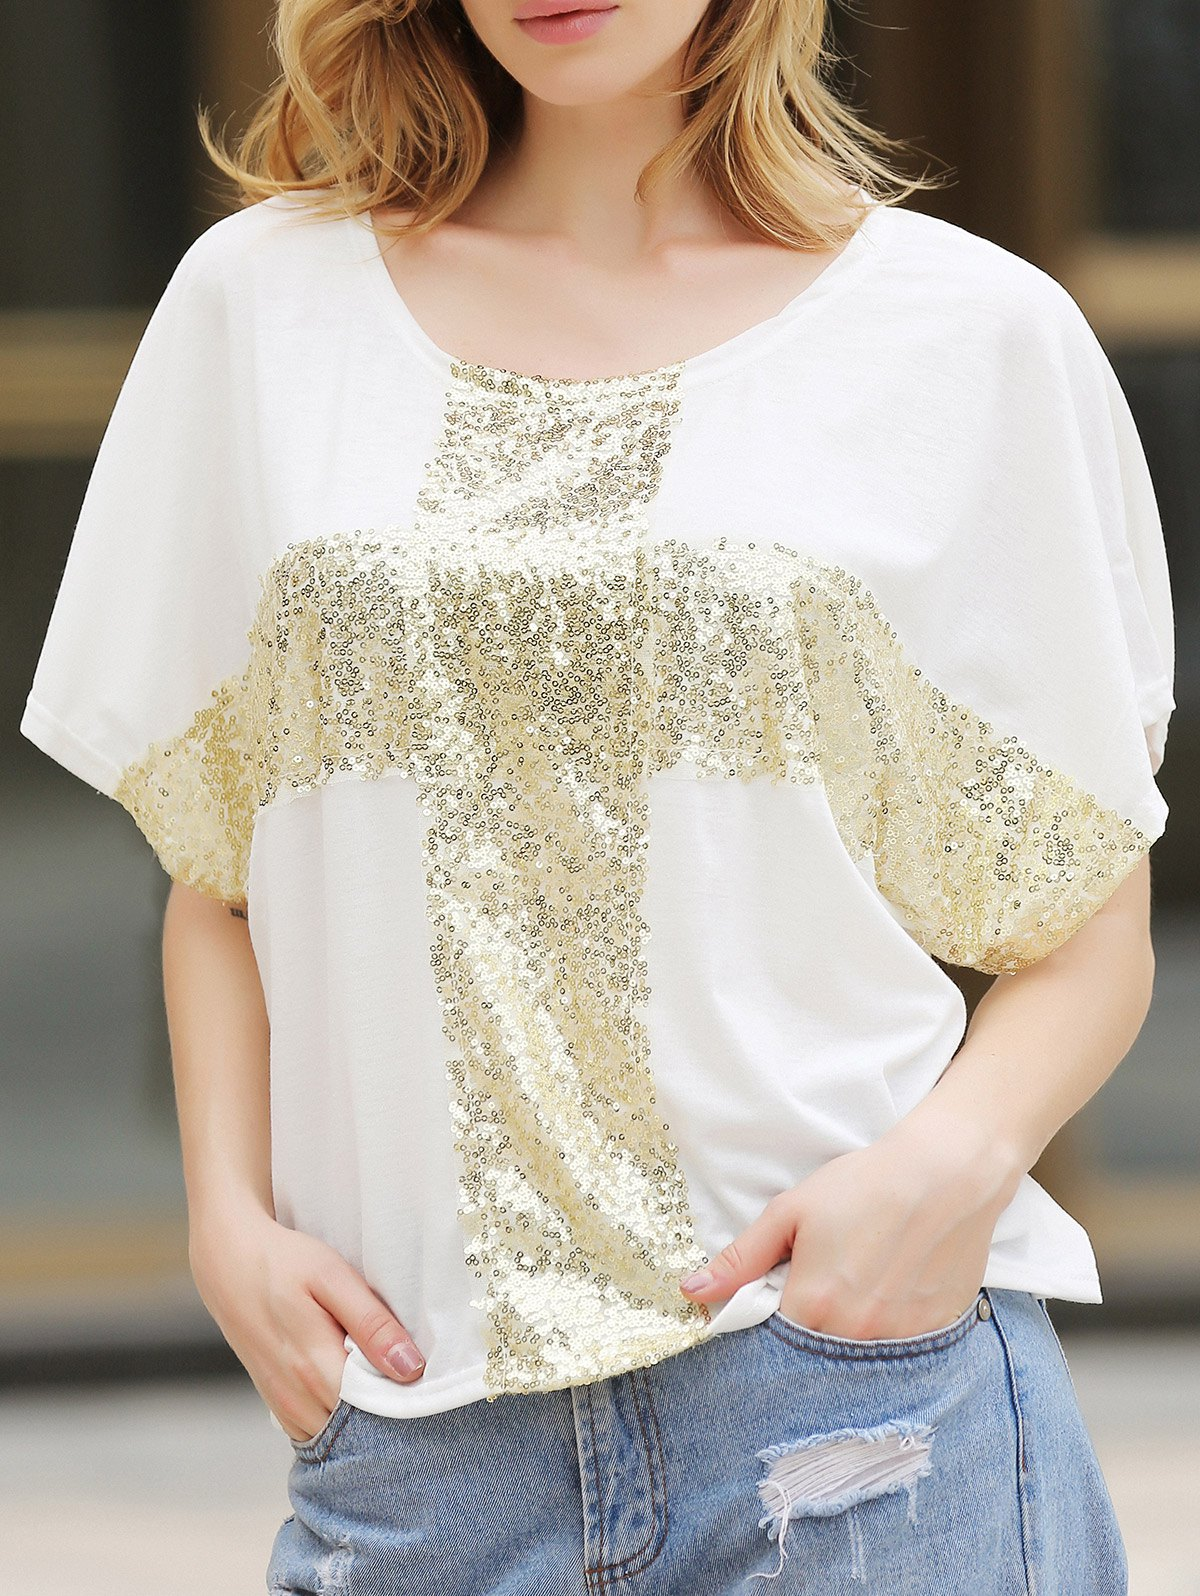 Women's Leisure Cross Sequins Decor Low Round Neck Loose T-shirt - WHITE M